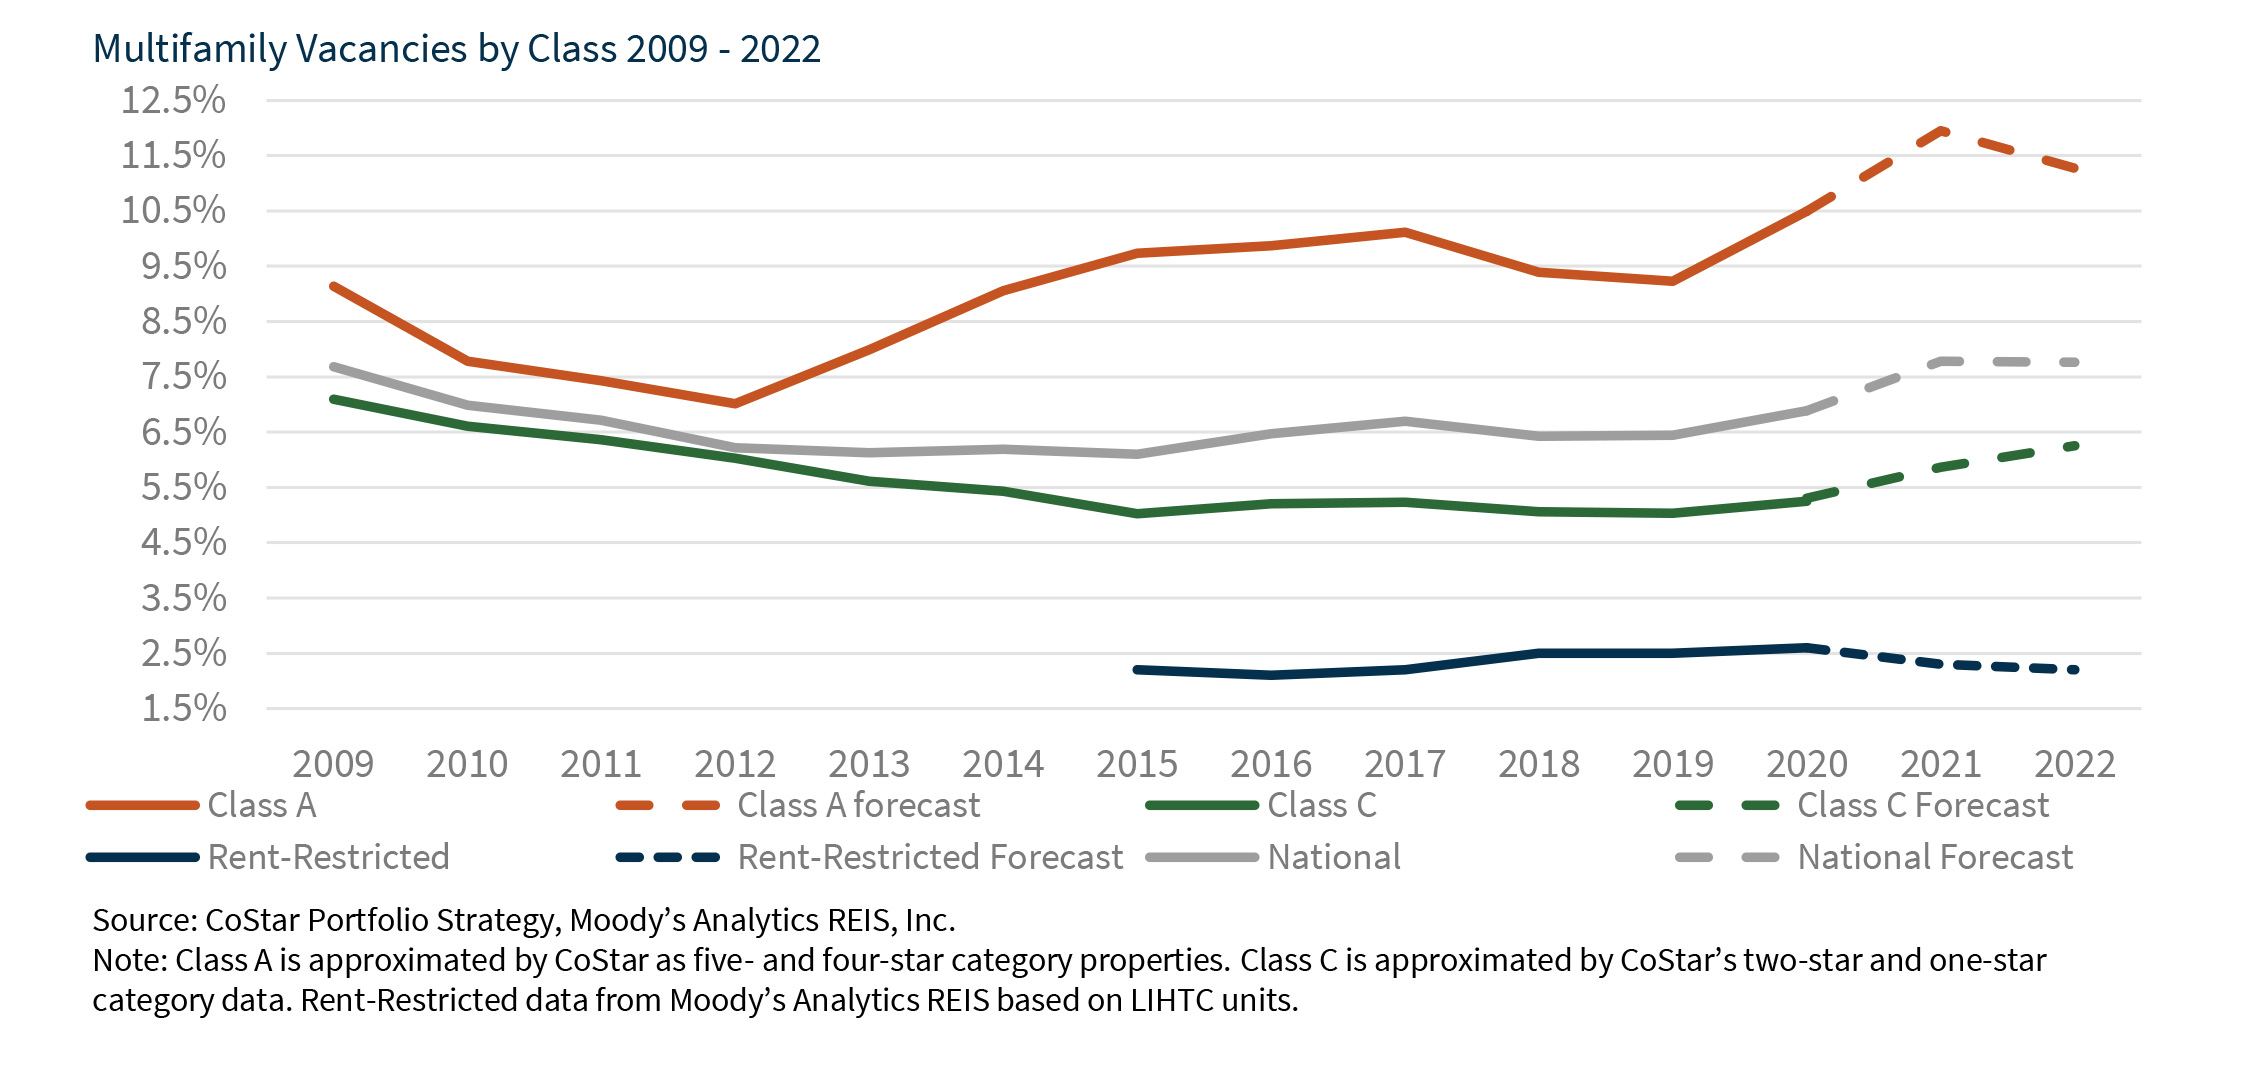 Multifamily Vacancies by Class 2009 - 2022